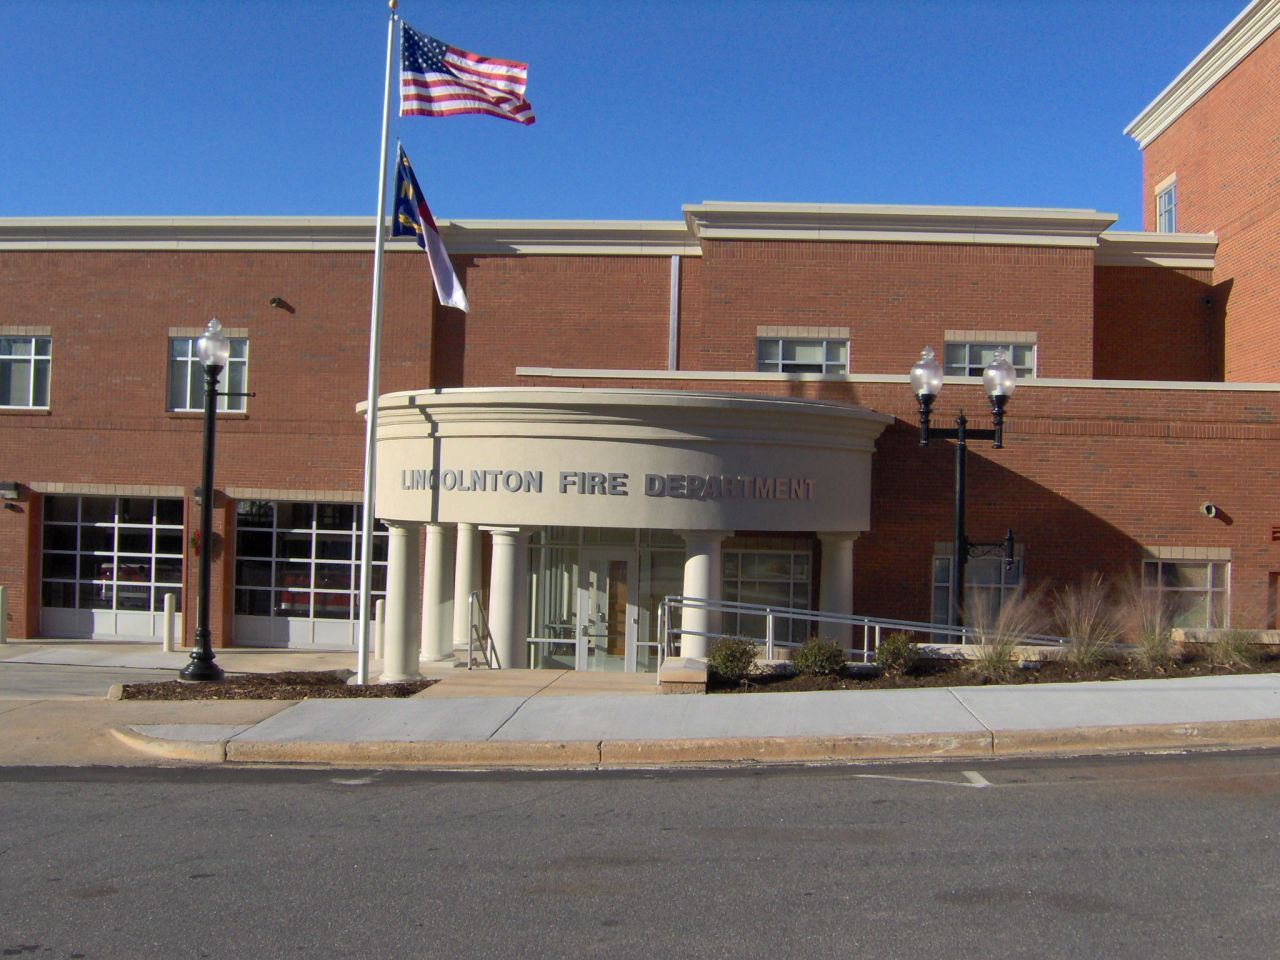 Lincolnton County City Hall and Fire Department